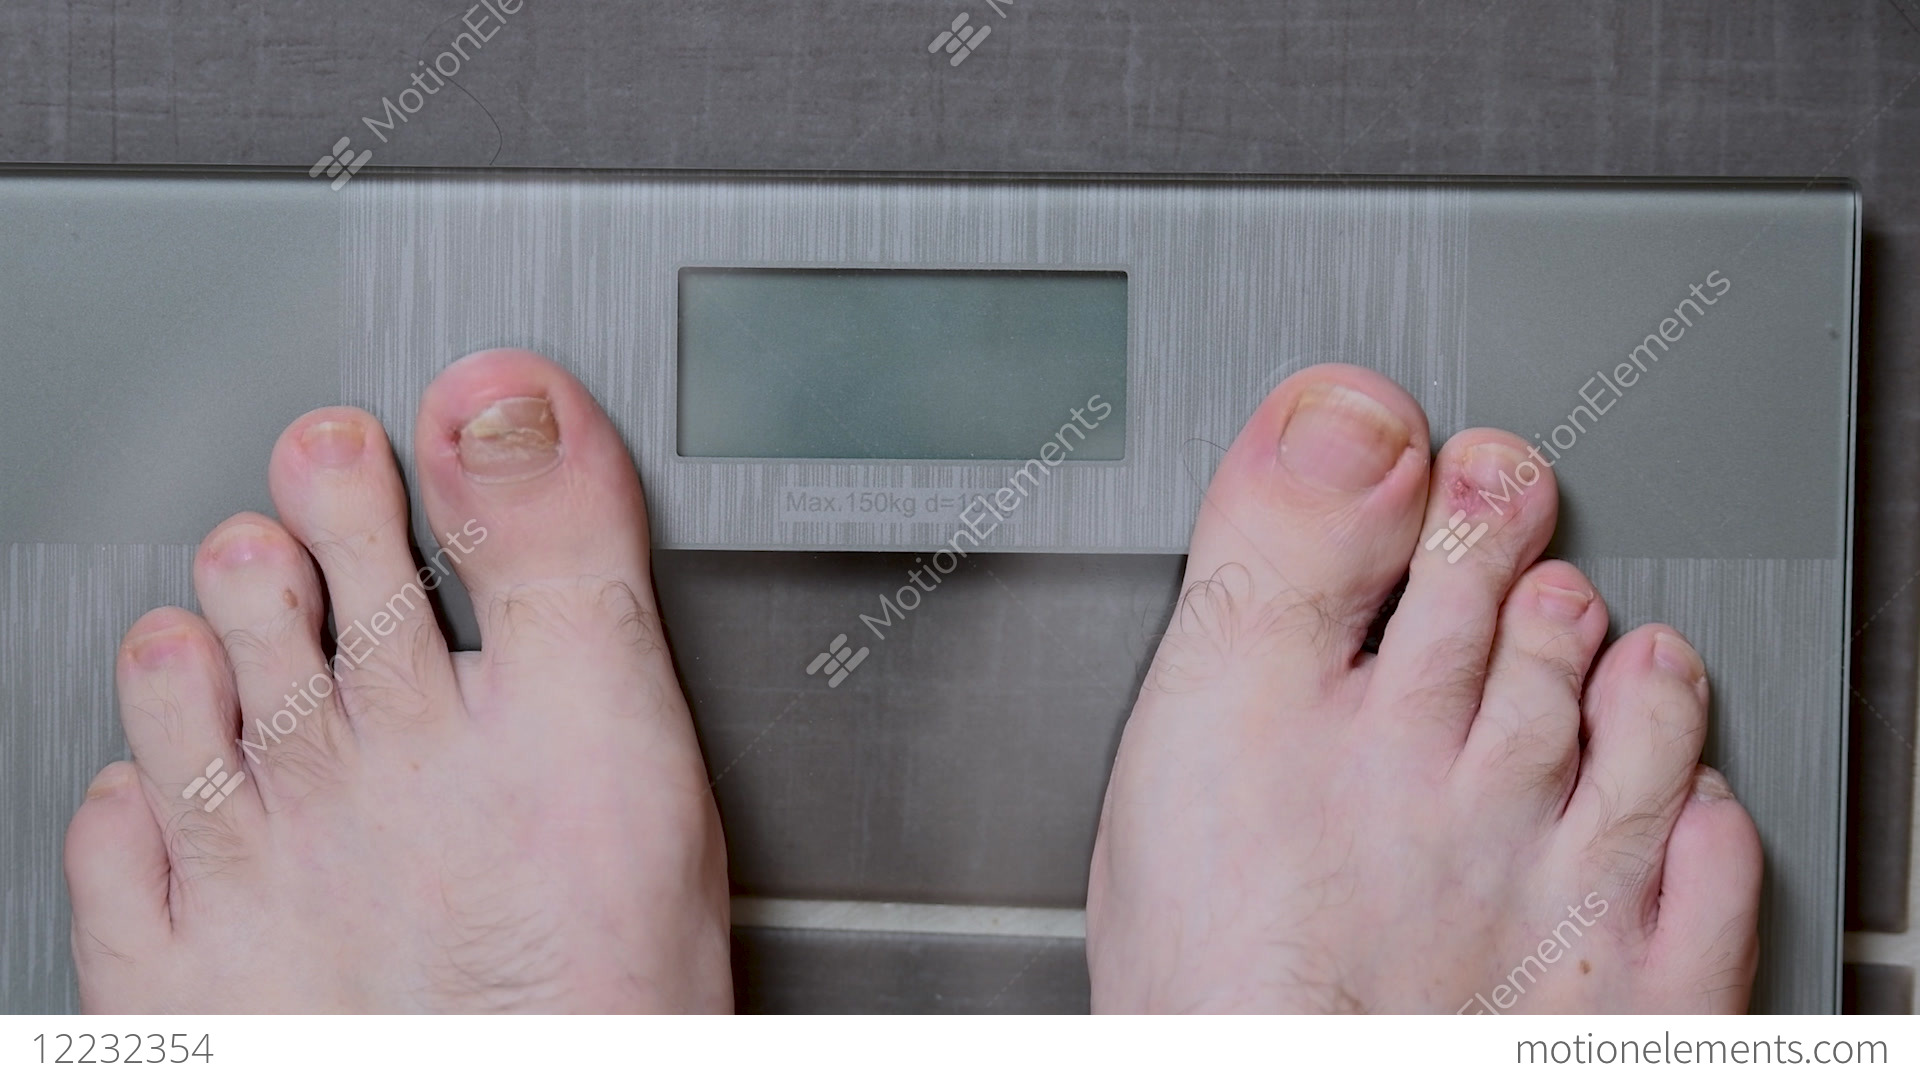 Male Feet On Glscales Menst Body Weight Stock Footage